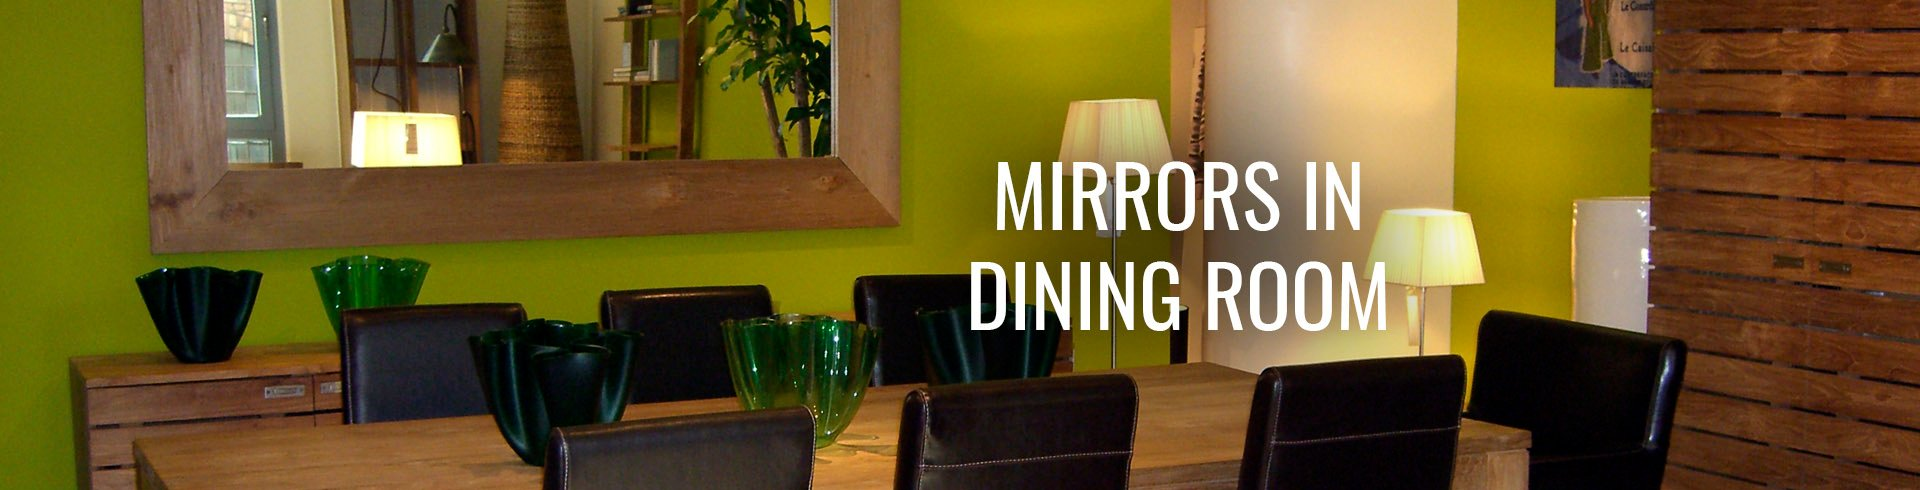 Mirrors in Dining Room